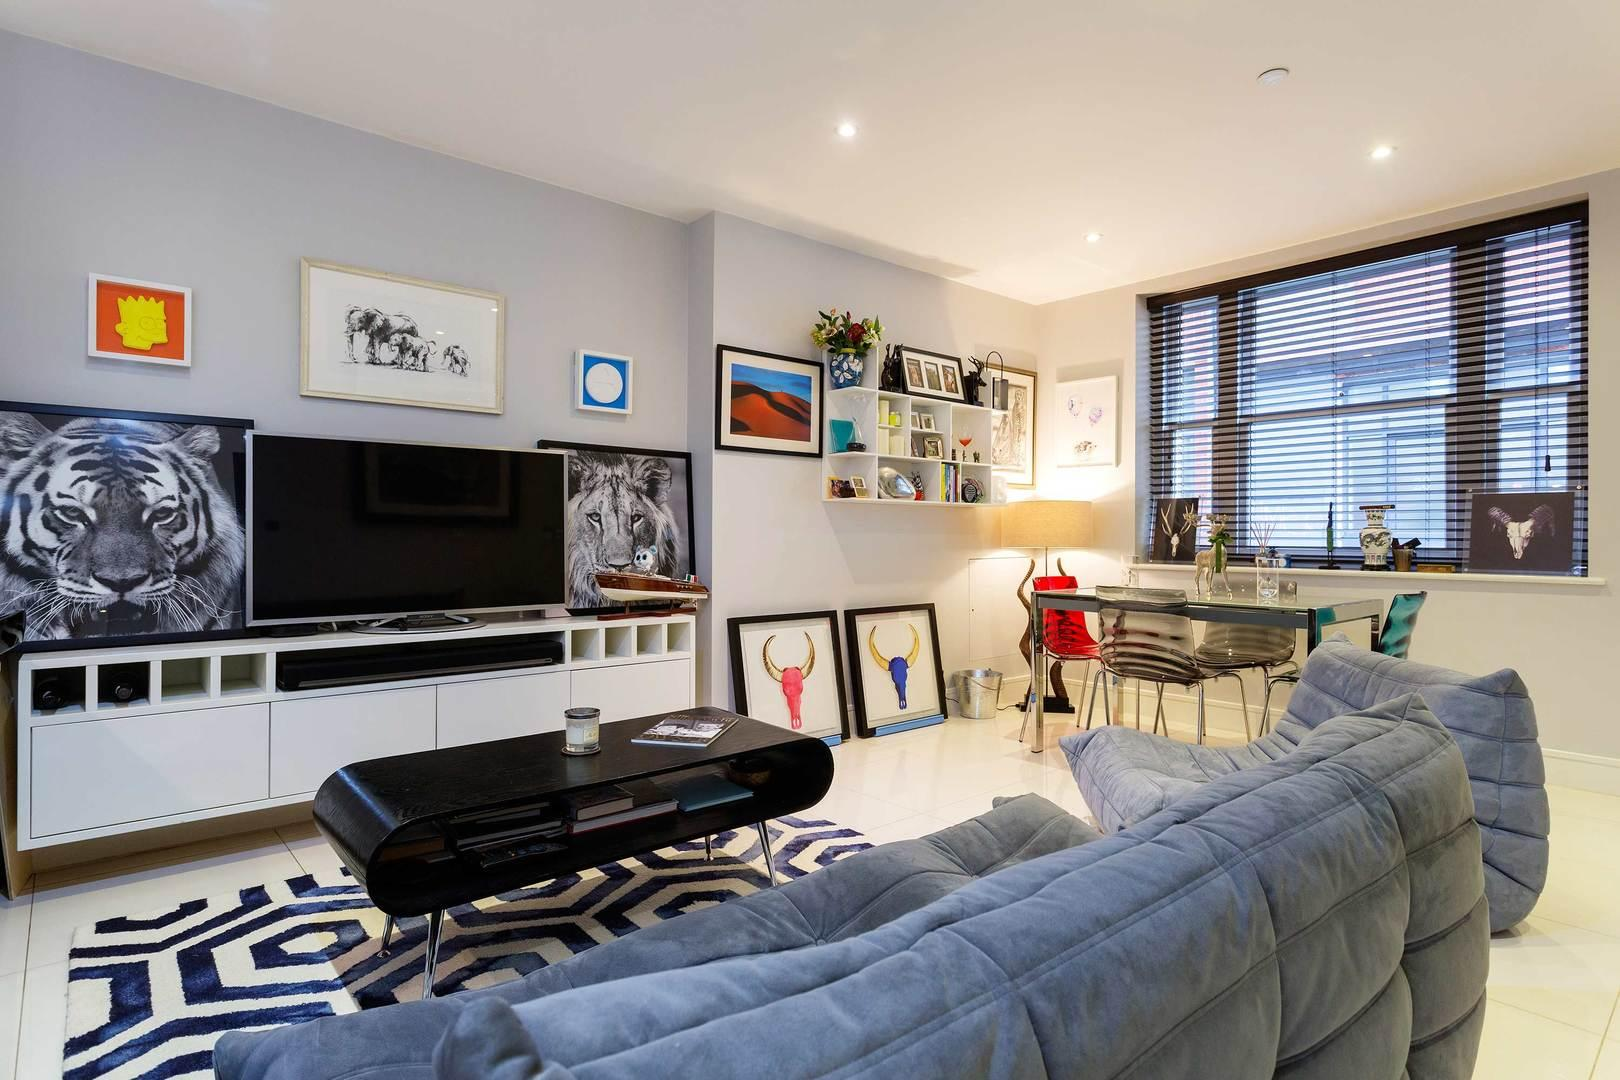 Property Image 1 - Chic Contemporary Aldgate Home with Stylish Interior